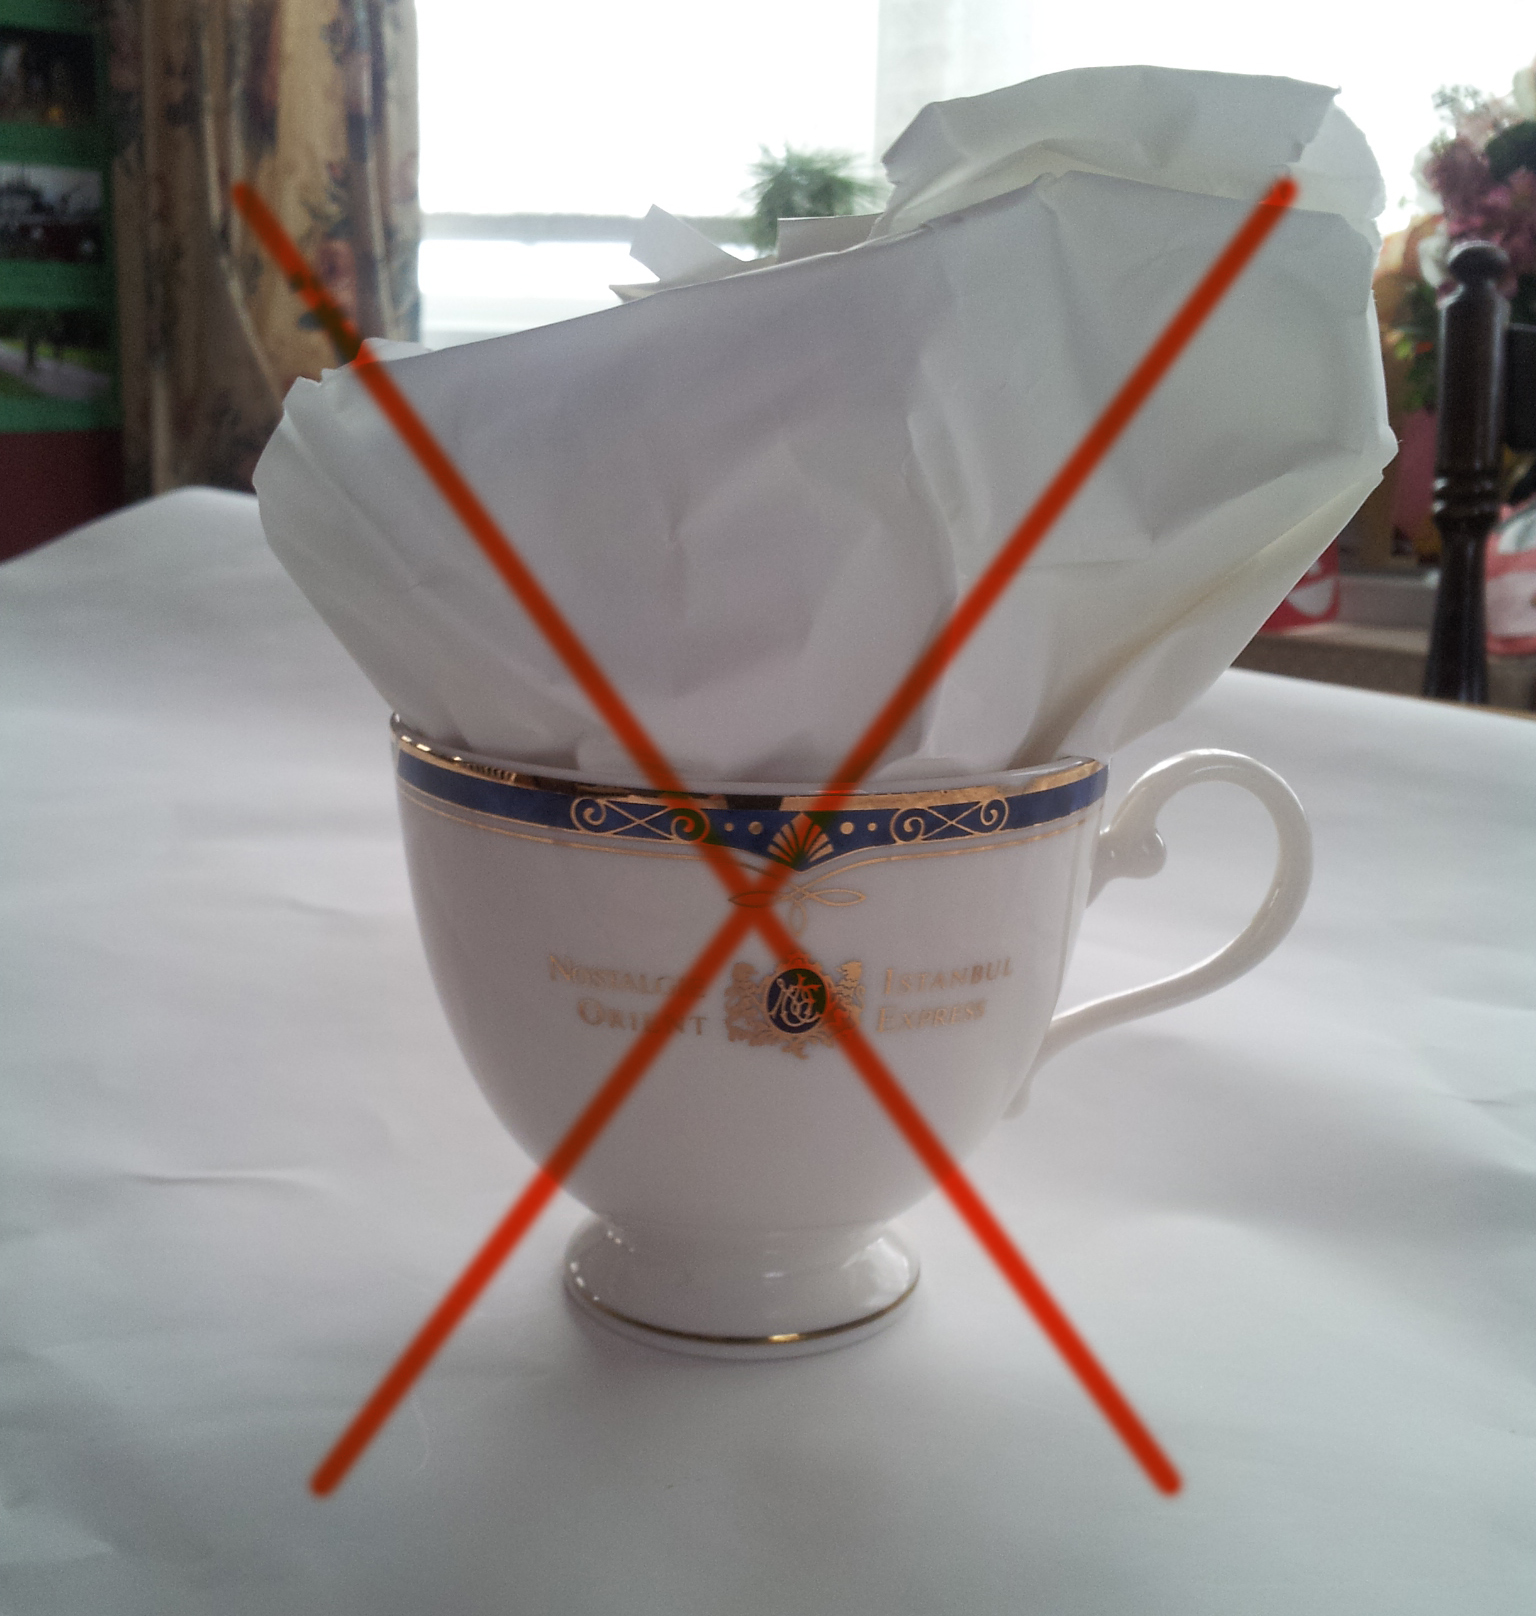 How Not to Pack Teacups